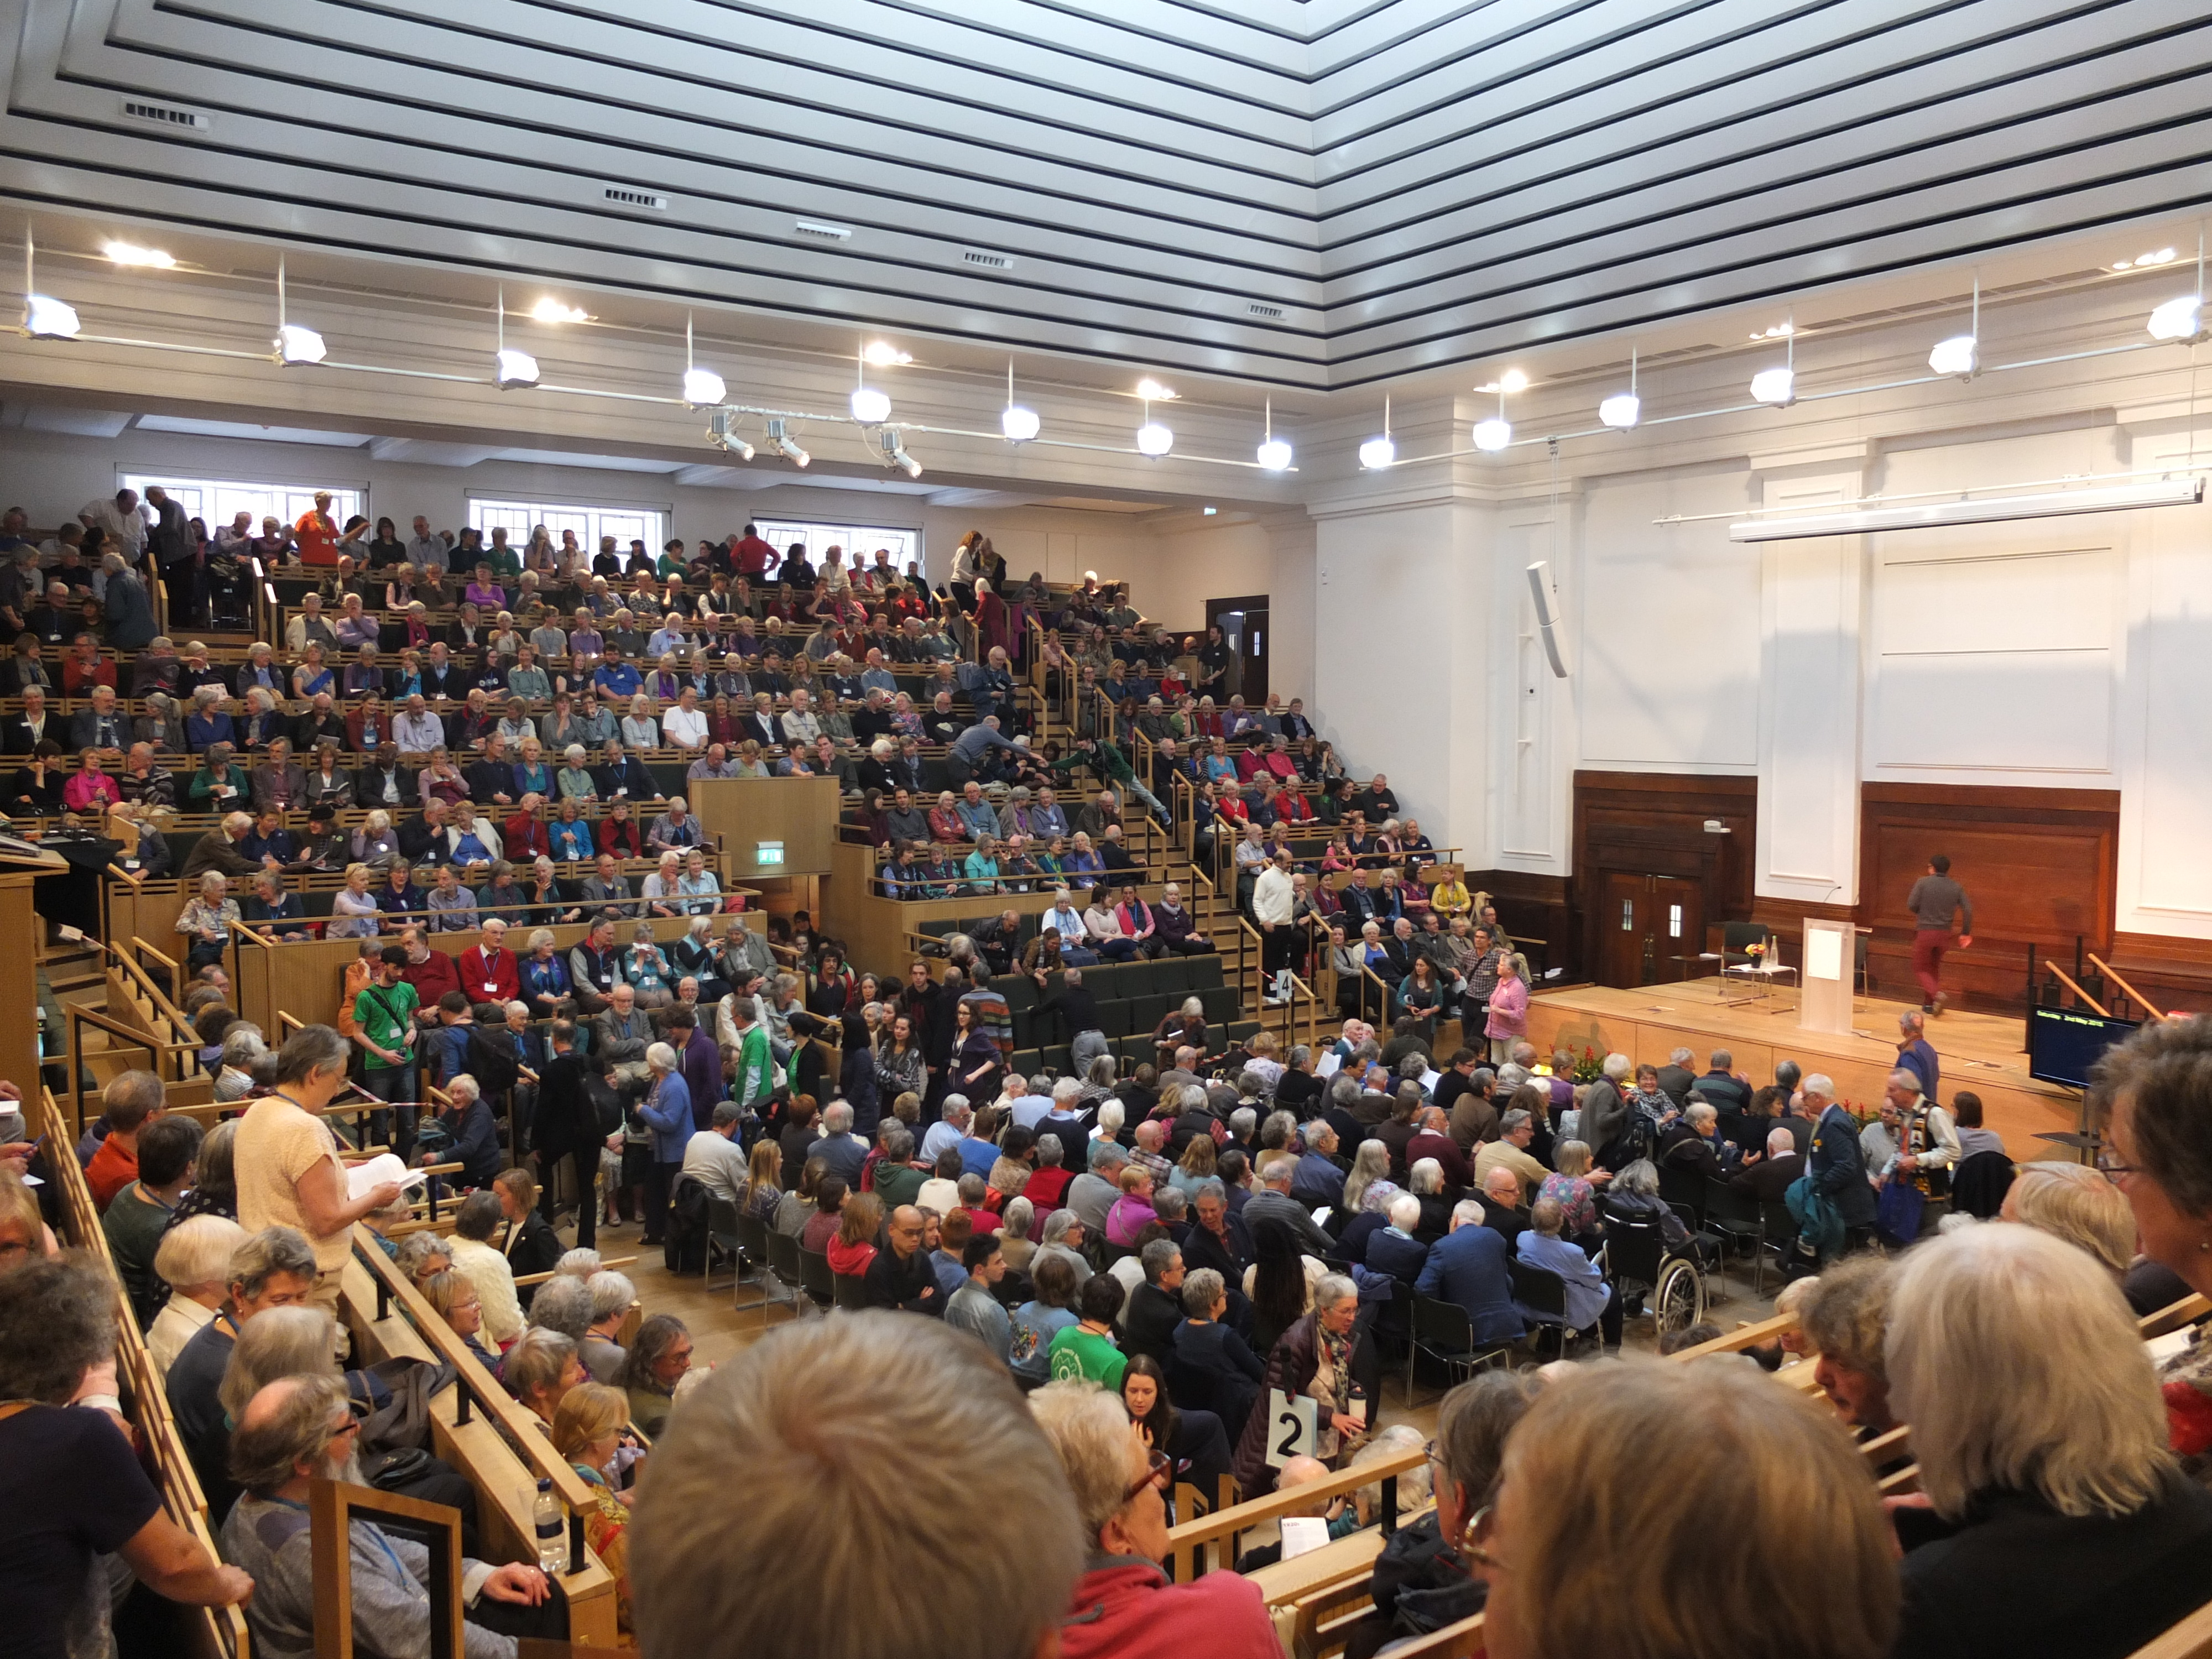 Around 1000 Quakers seated in the tiered large meeting house waiting for the swarthmore lecture to begin